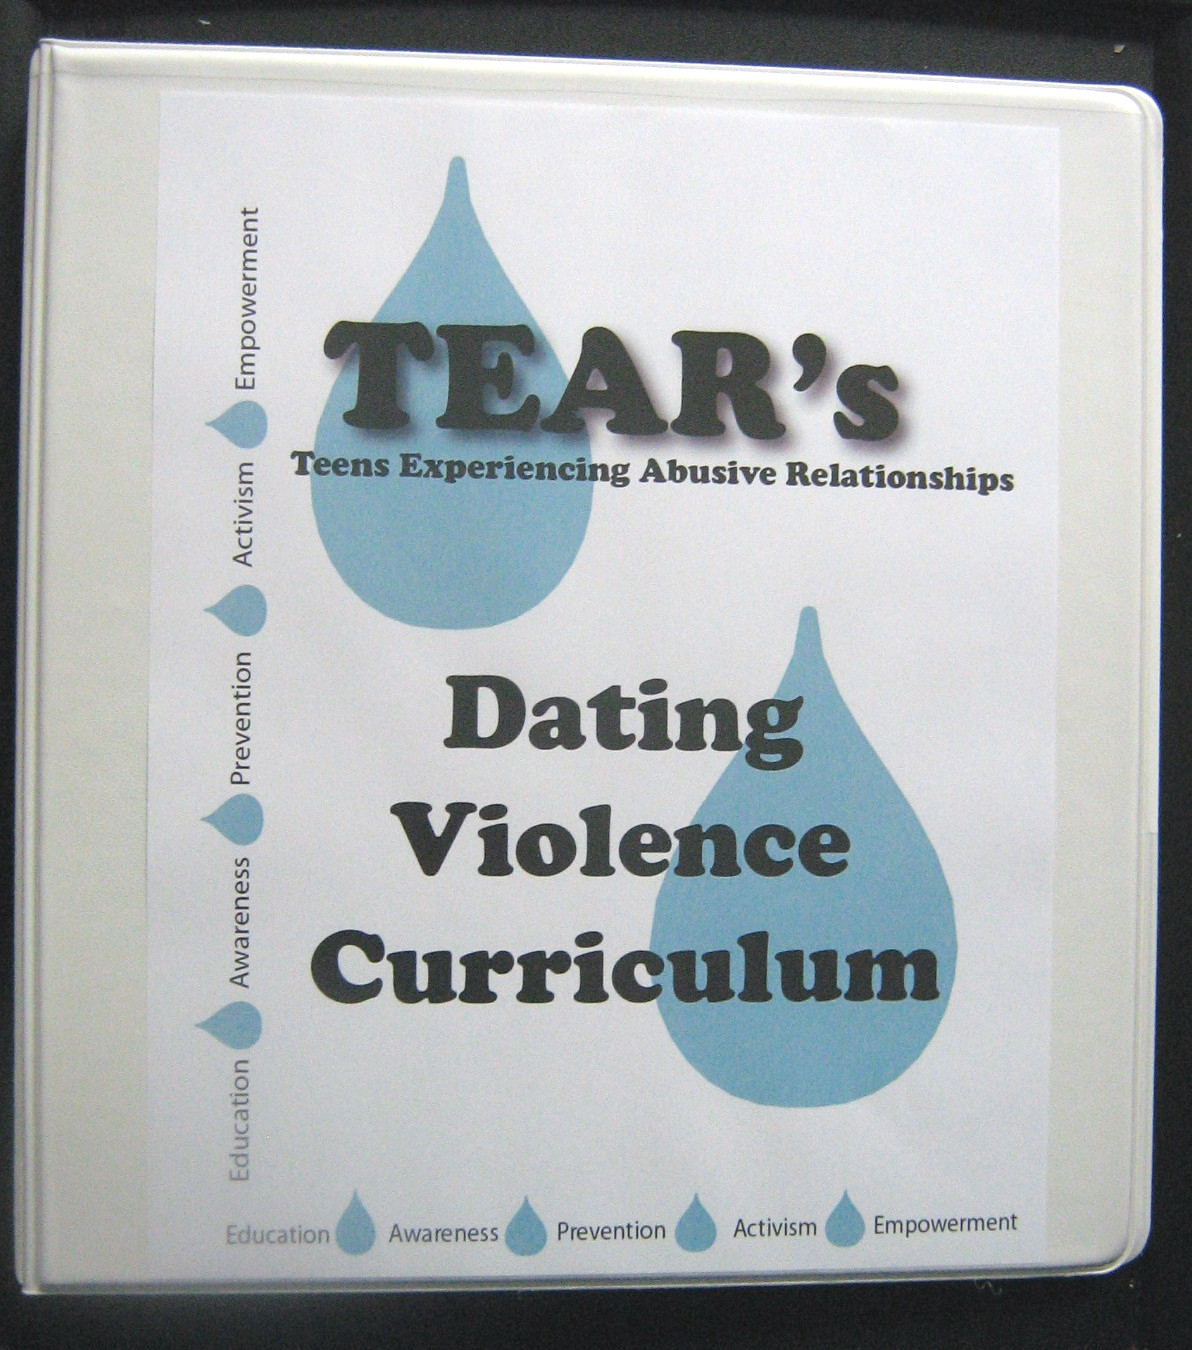 Hotlines for dating abuse ads 5